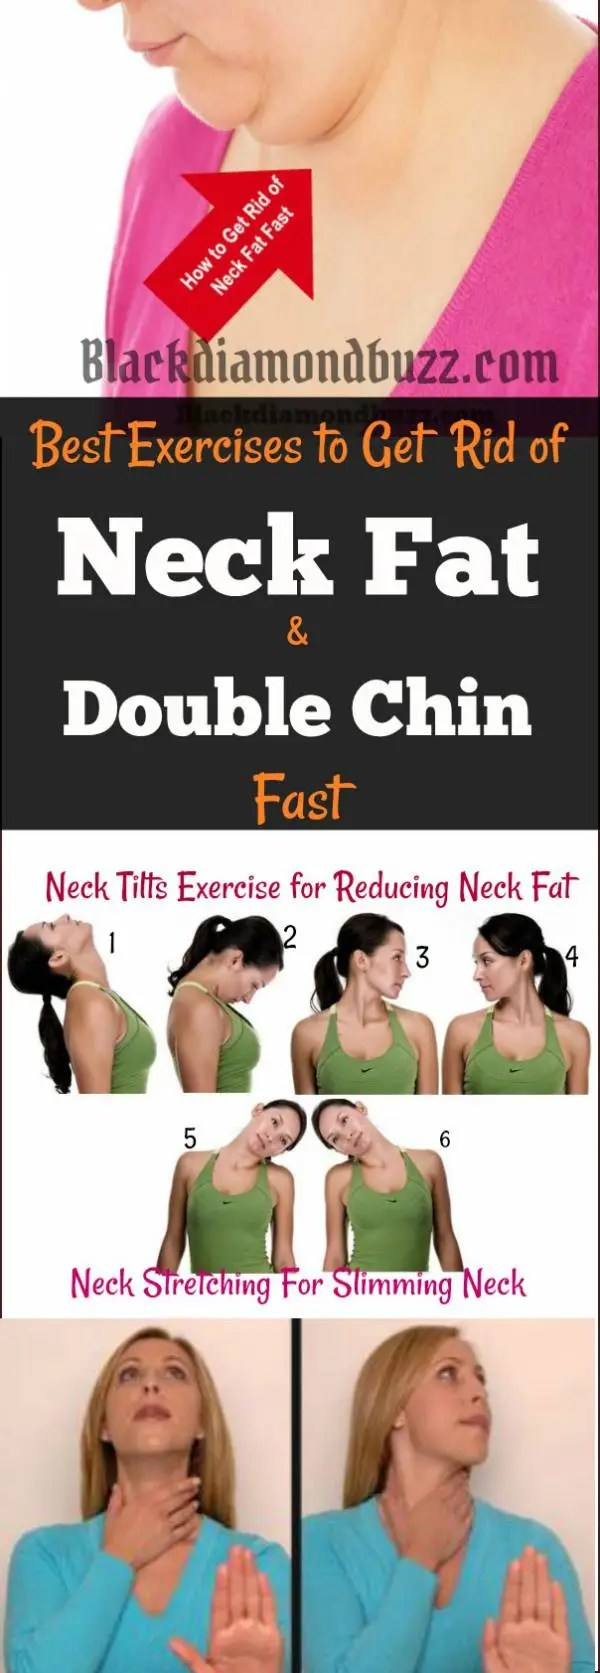 How to Get Rid of Neck Fat Fast – Exercises and Home Remedies Tips